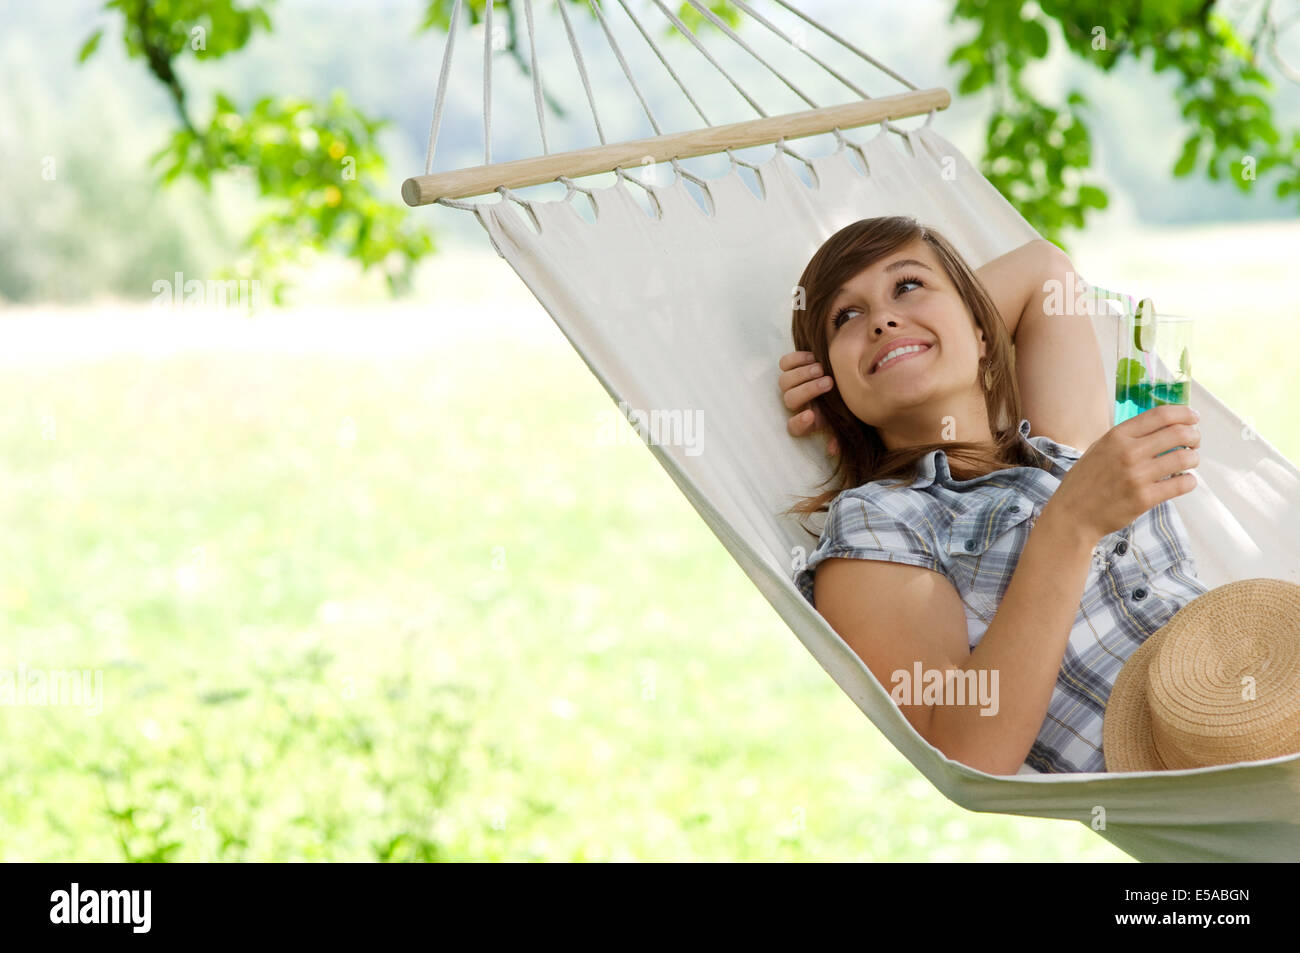 Young woman resting on hammock, Debica, Poland. - Stock Image